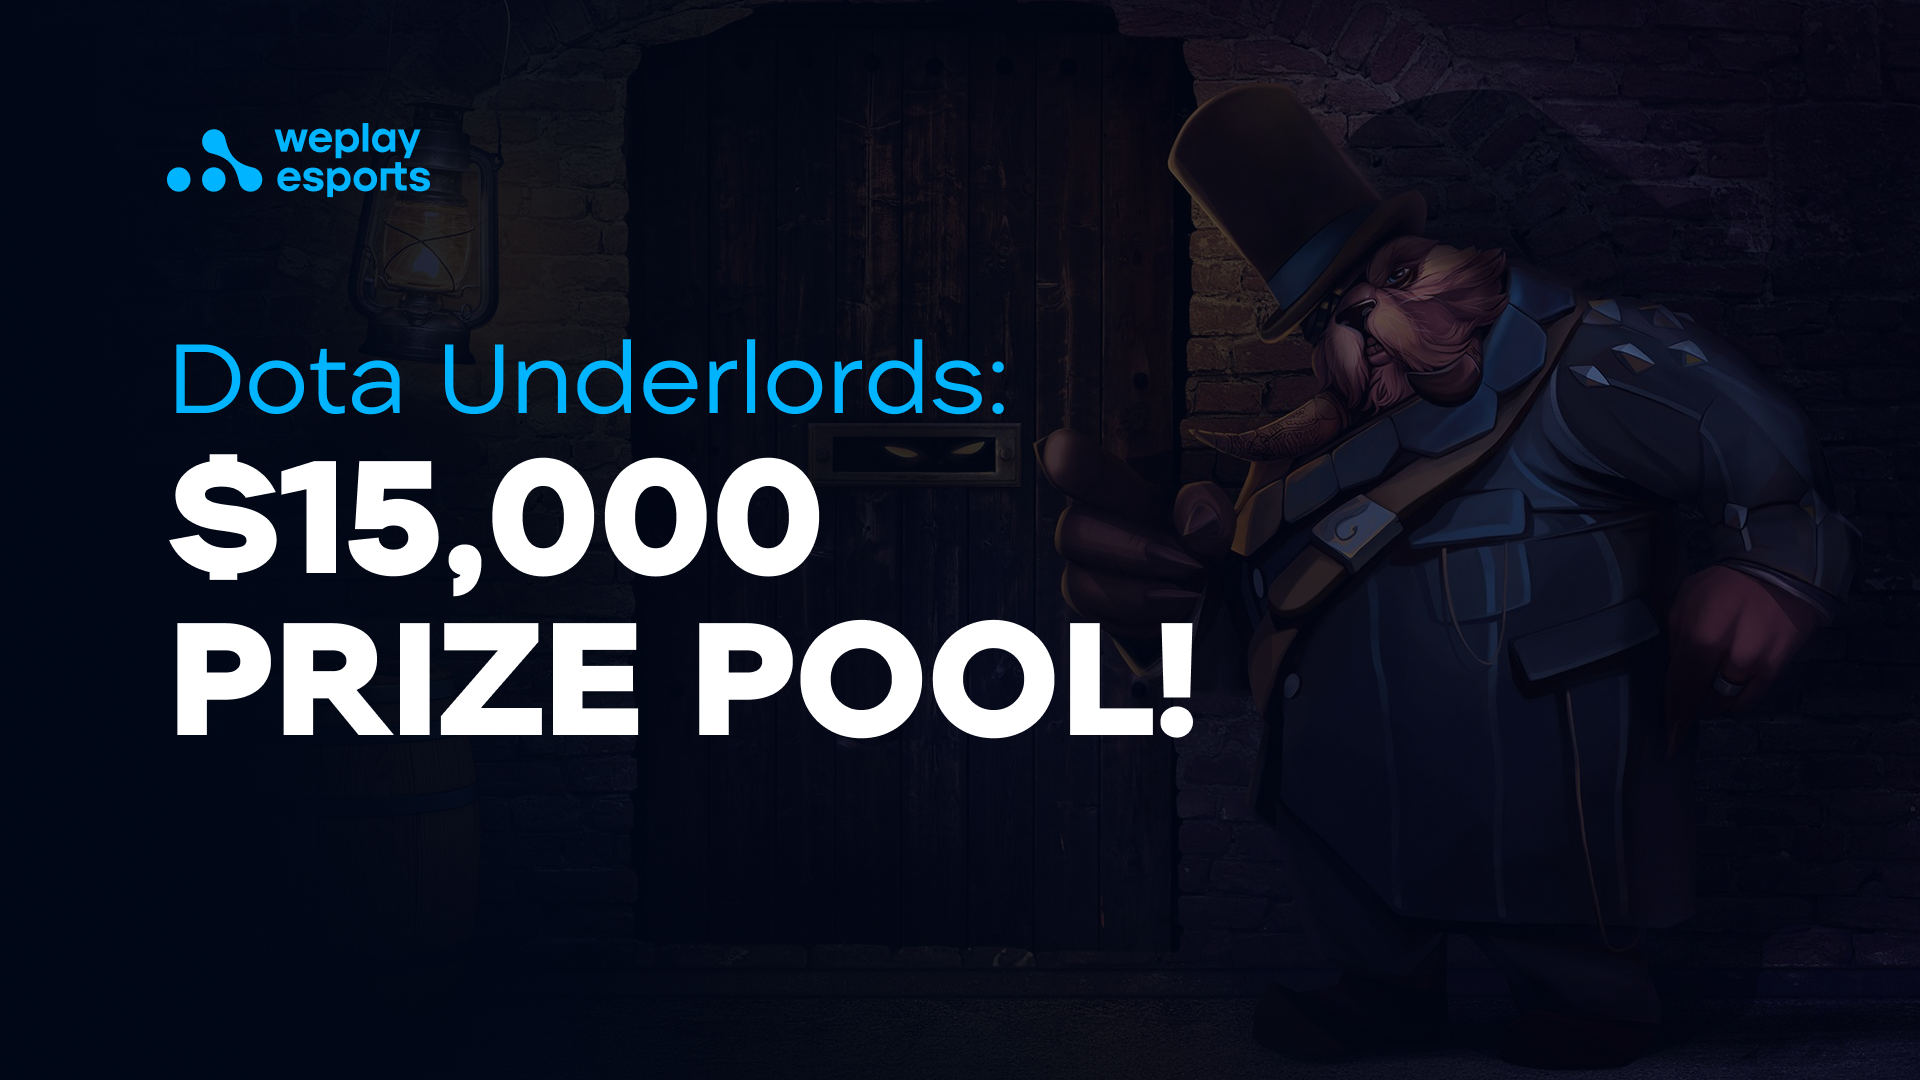 Dota Underlords tournament with a $15,000 prize pool